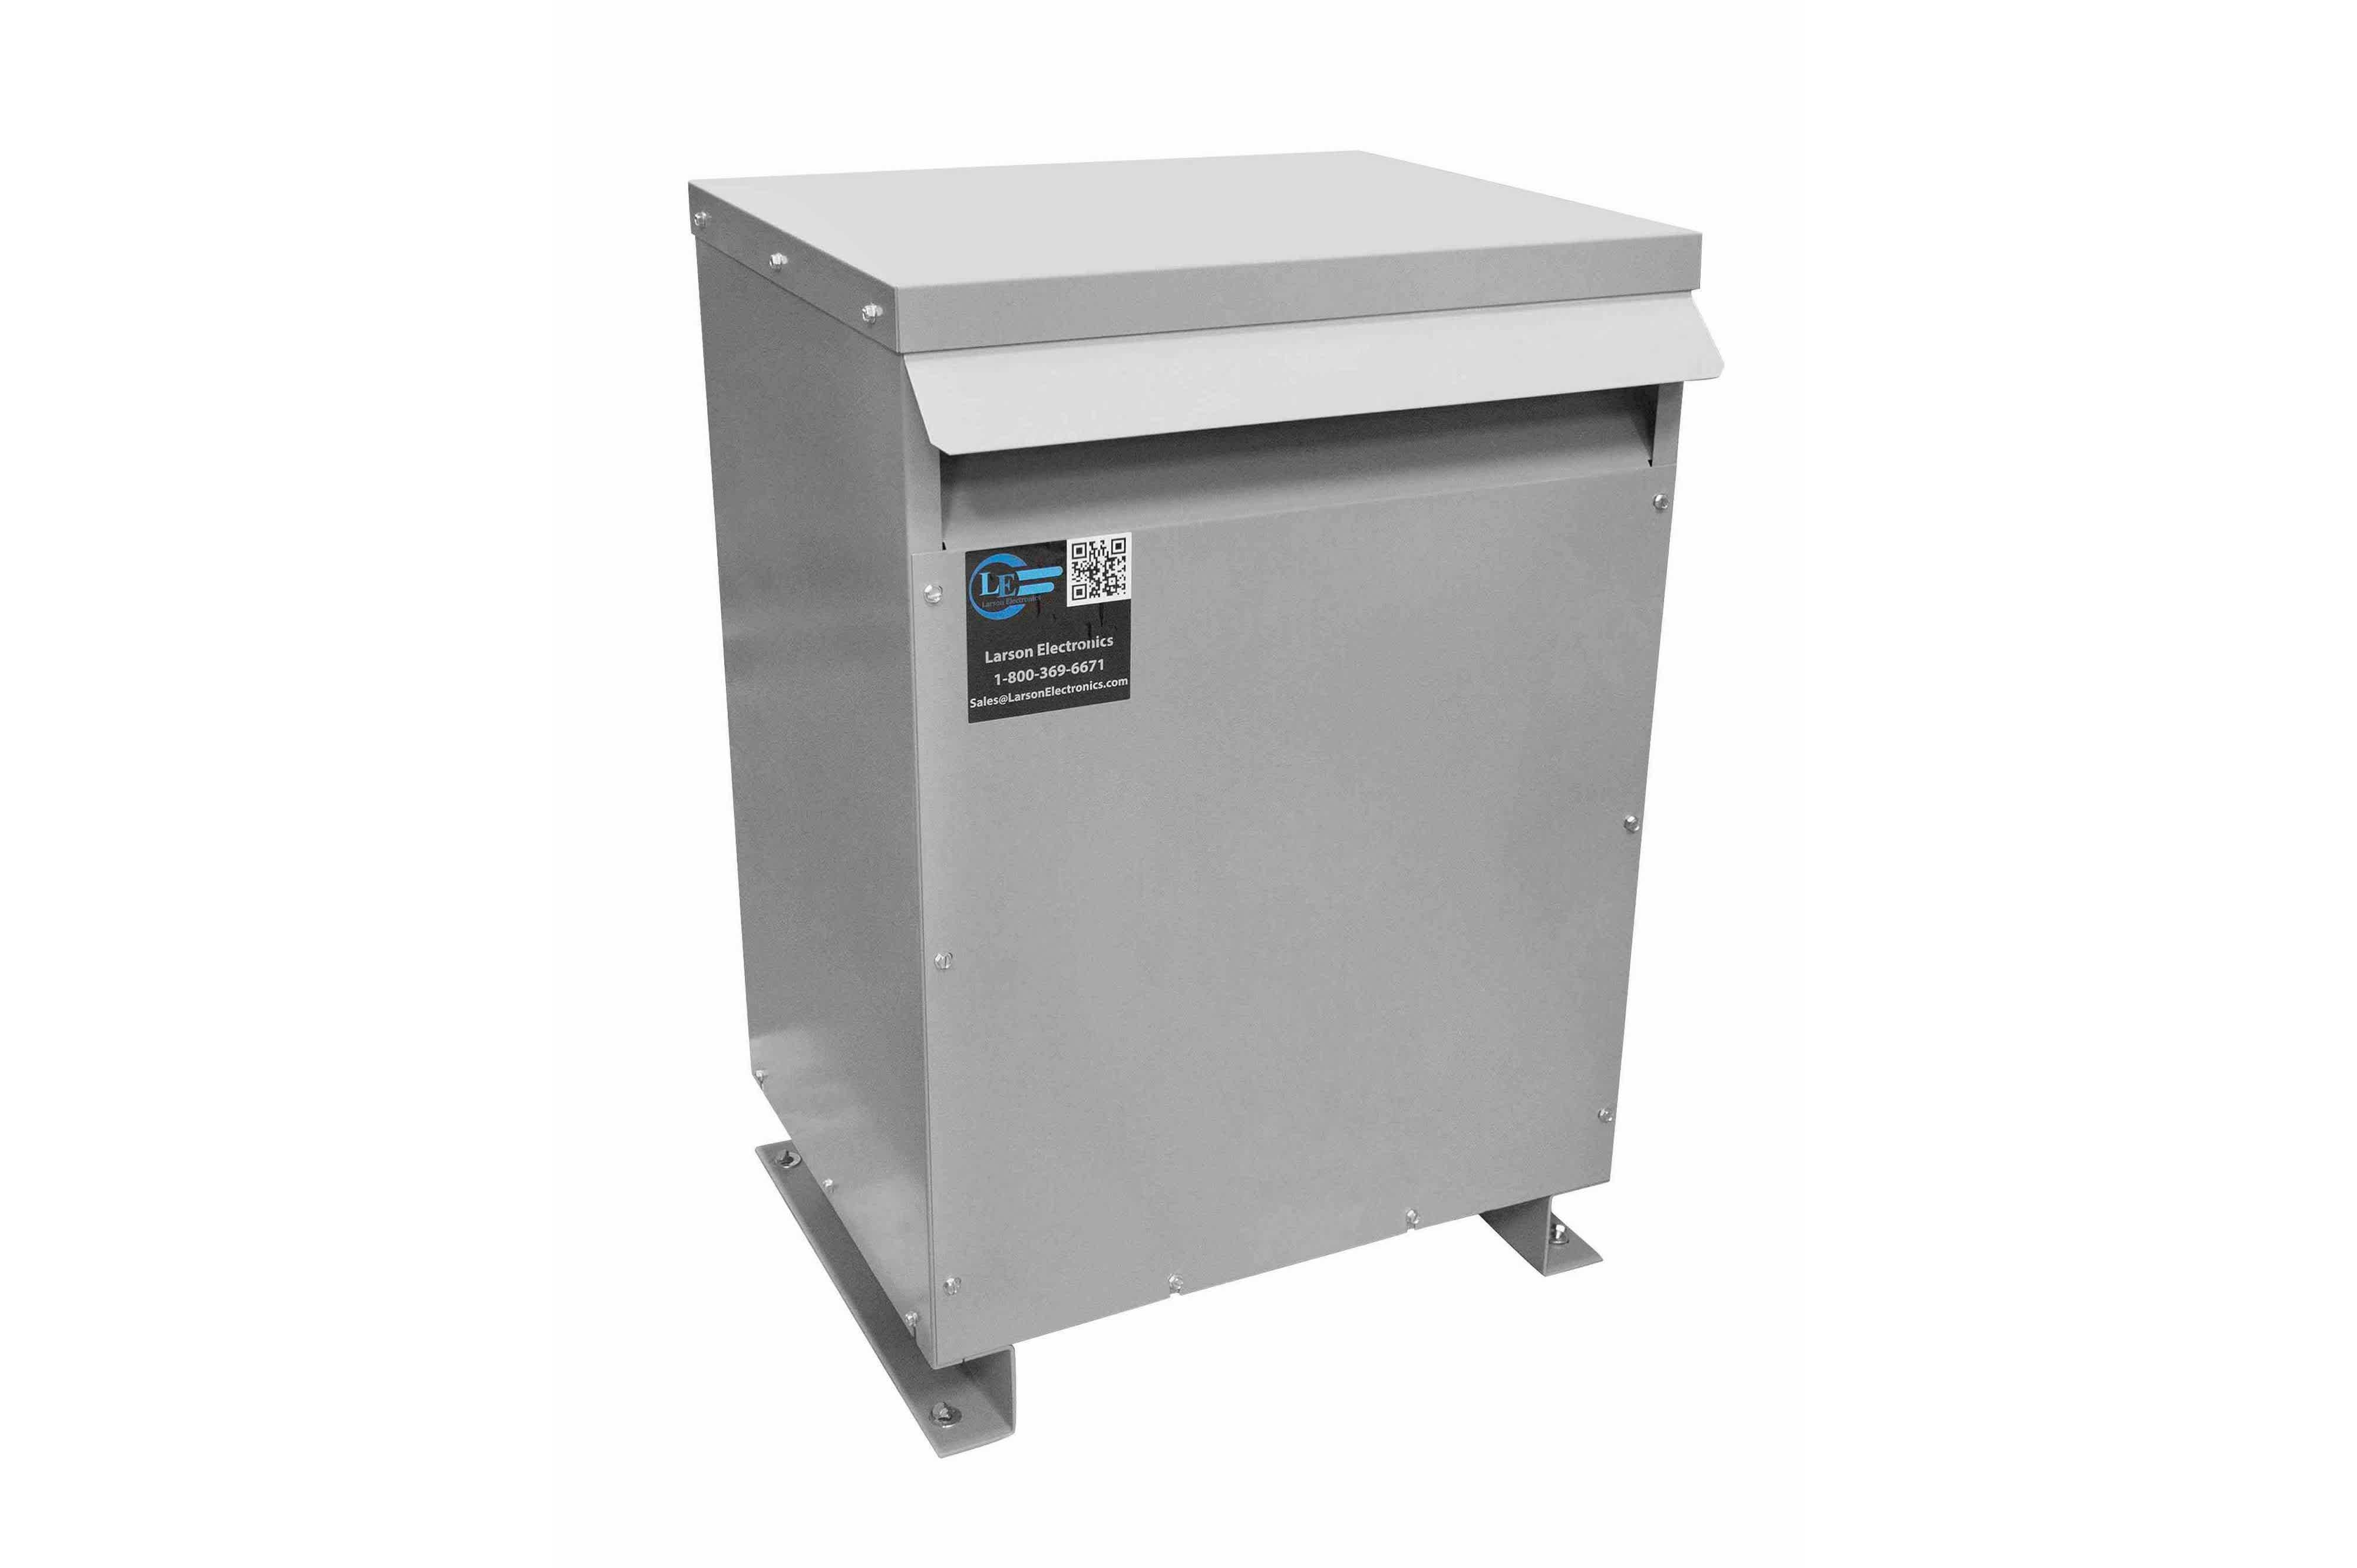 112.5 kVA 3PH Isolation Transformer, 480V Wye Primary, 600V Delta Secondary, N3R, Ventilated, 60 Hz